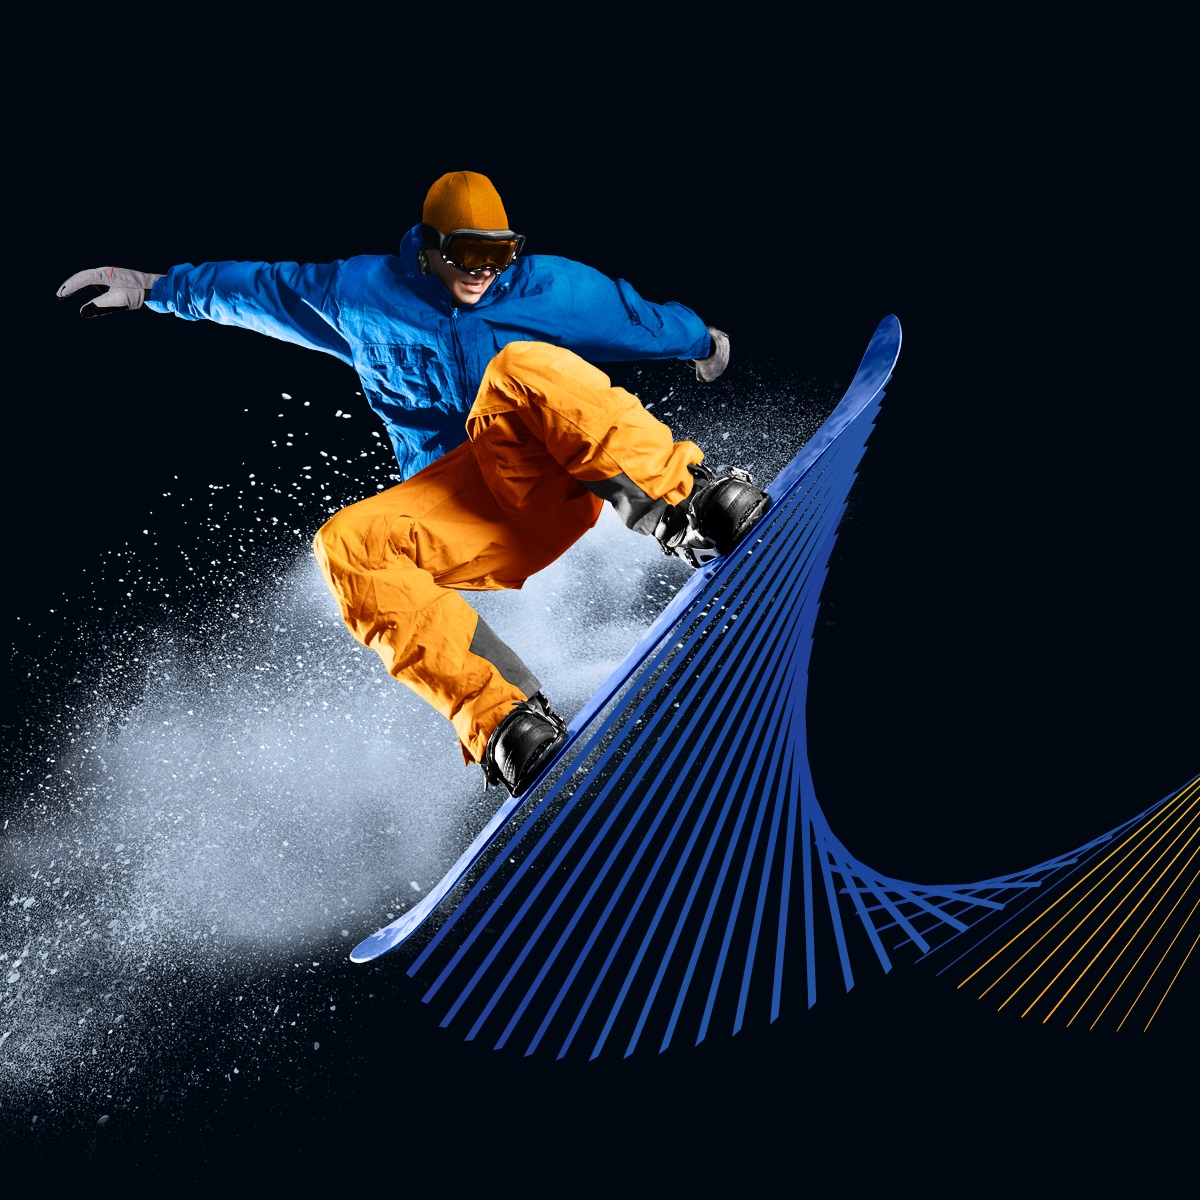 Win a trip to Olympic Winter Games PyeongChang 2018 thanks to Visa!